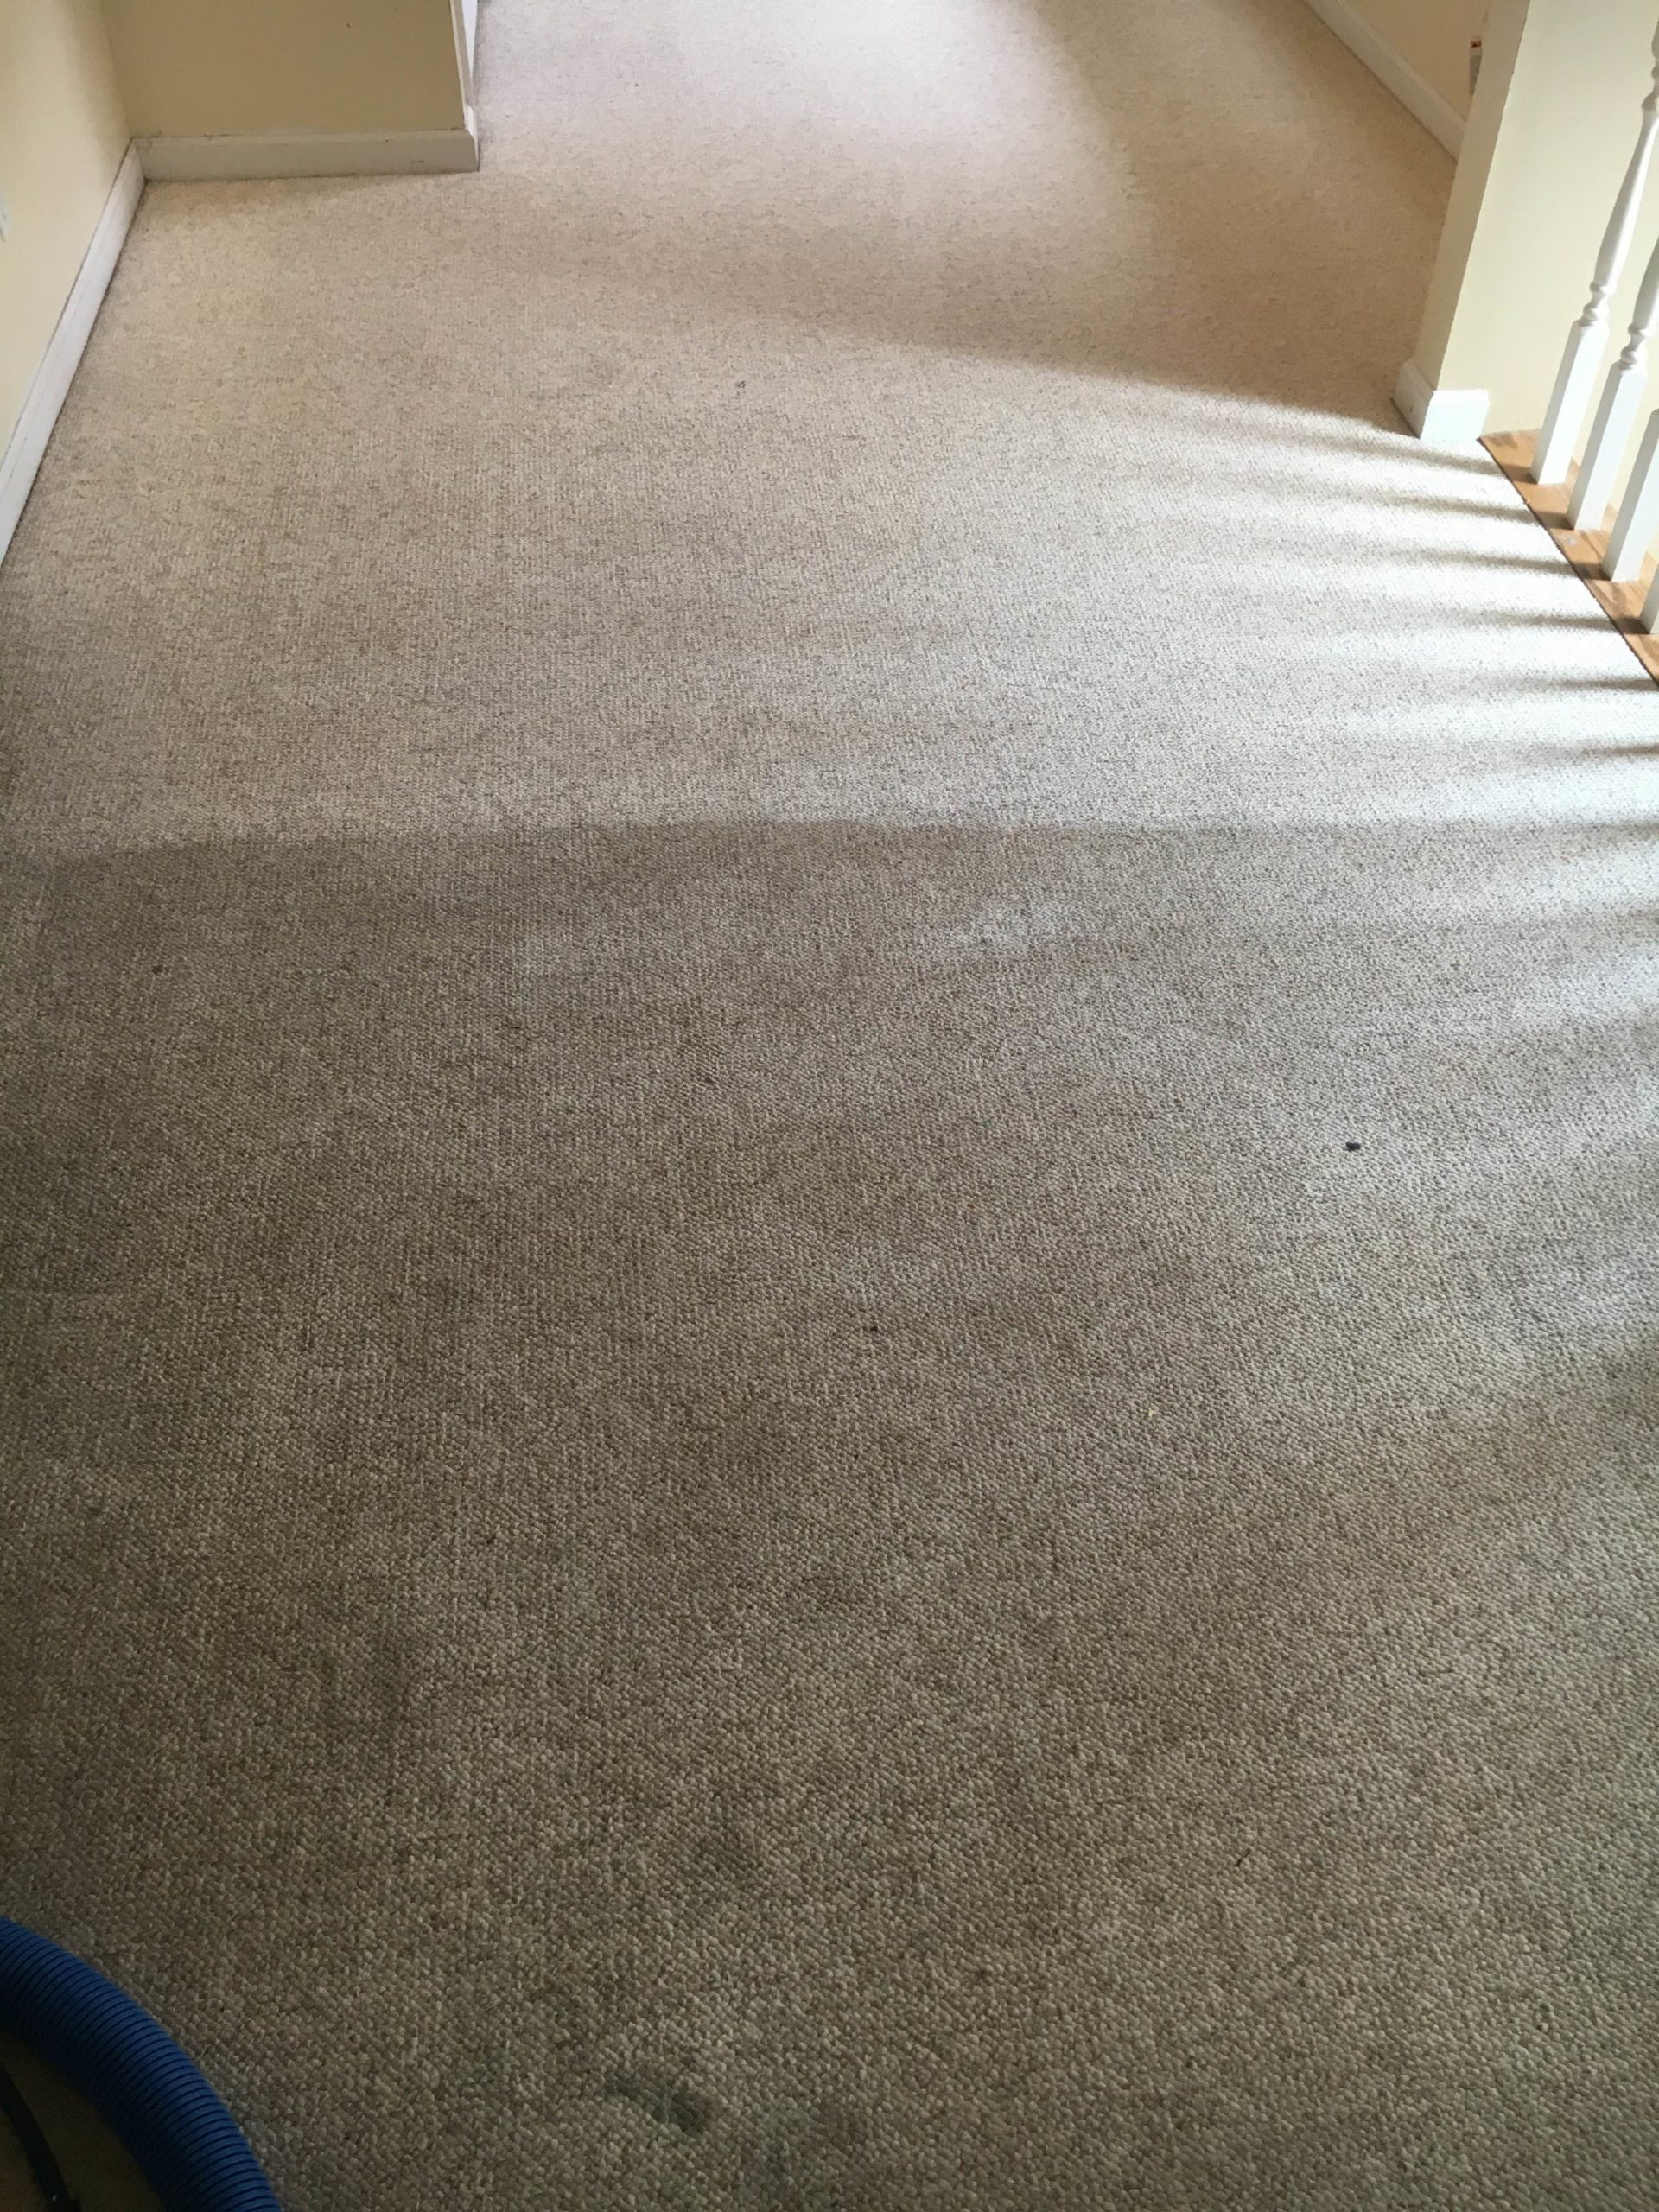 Carpet Cleaning Maryland Heights